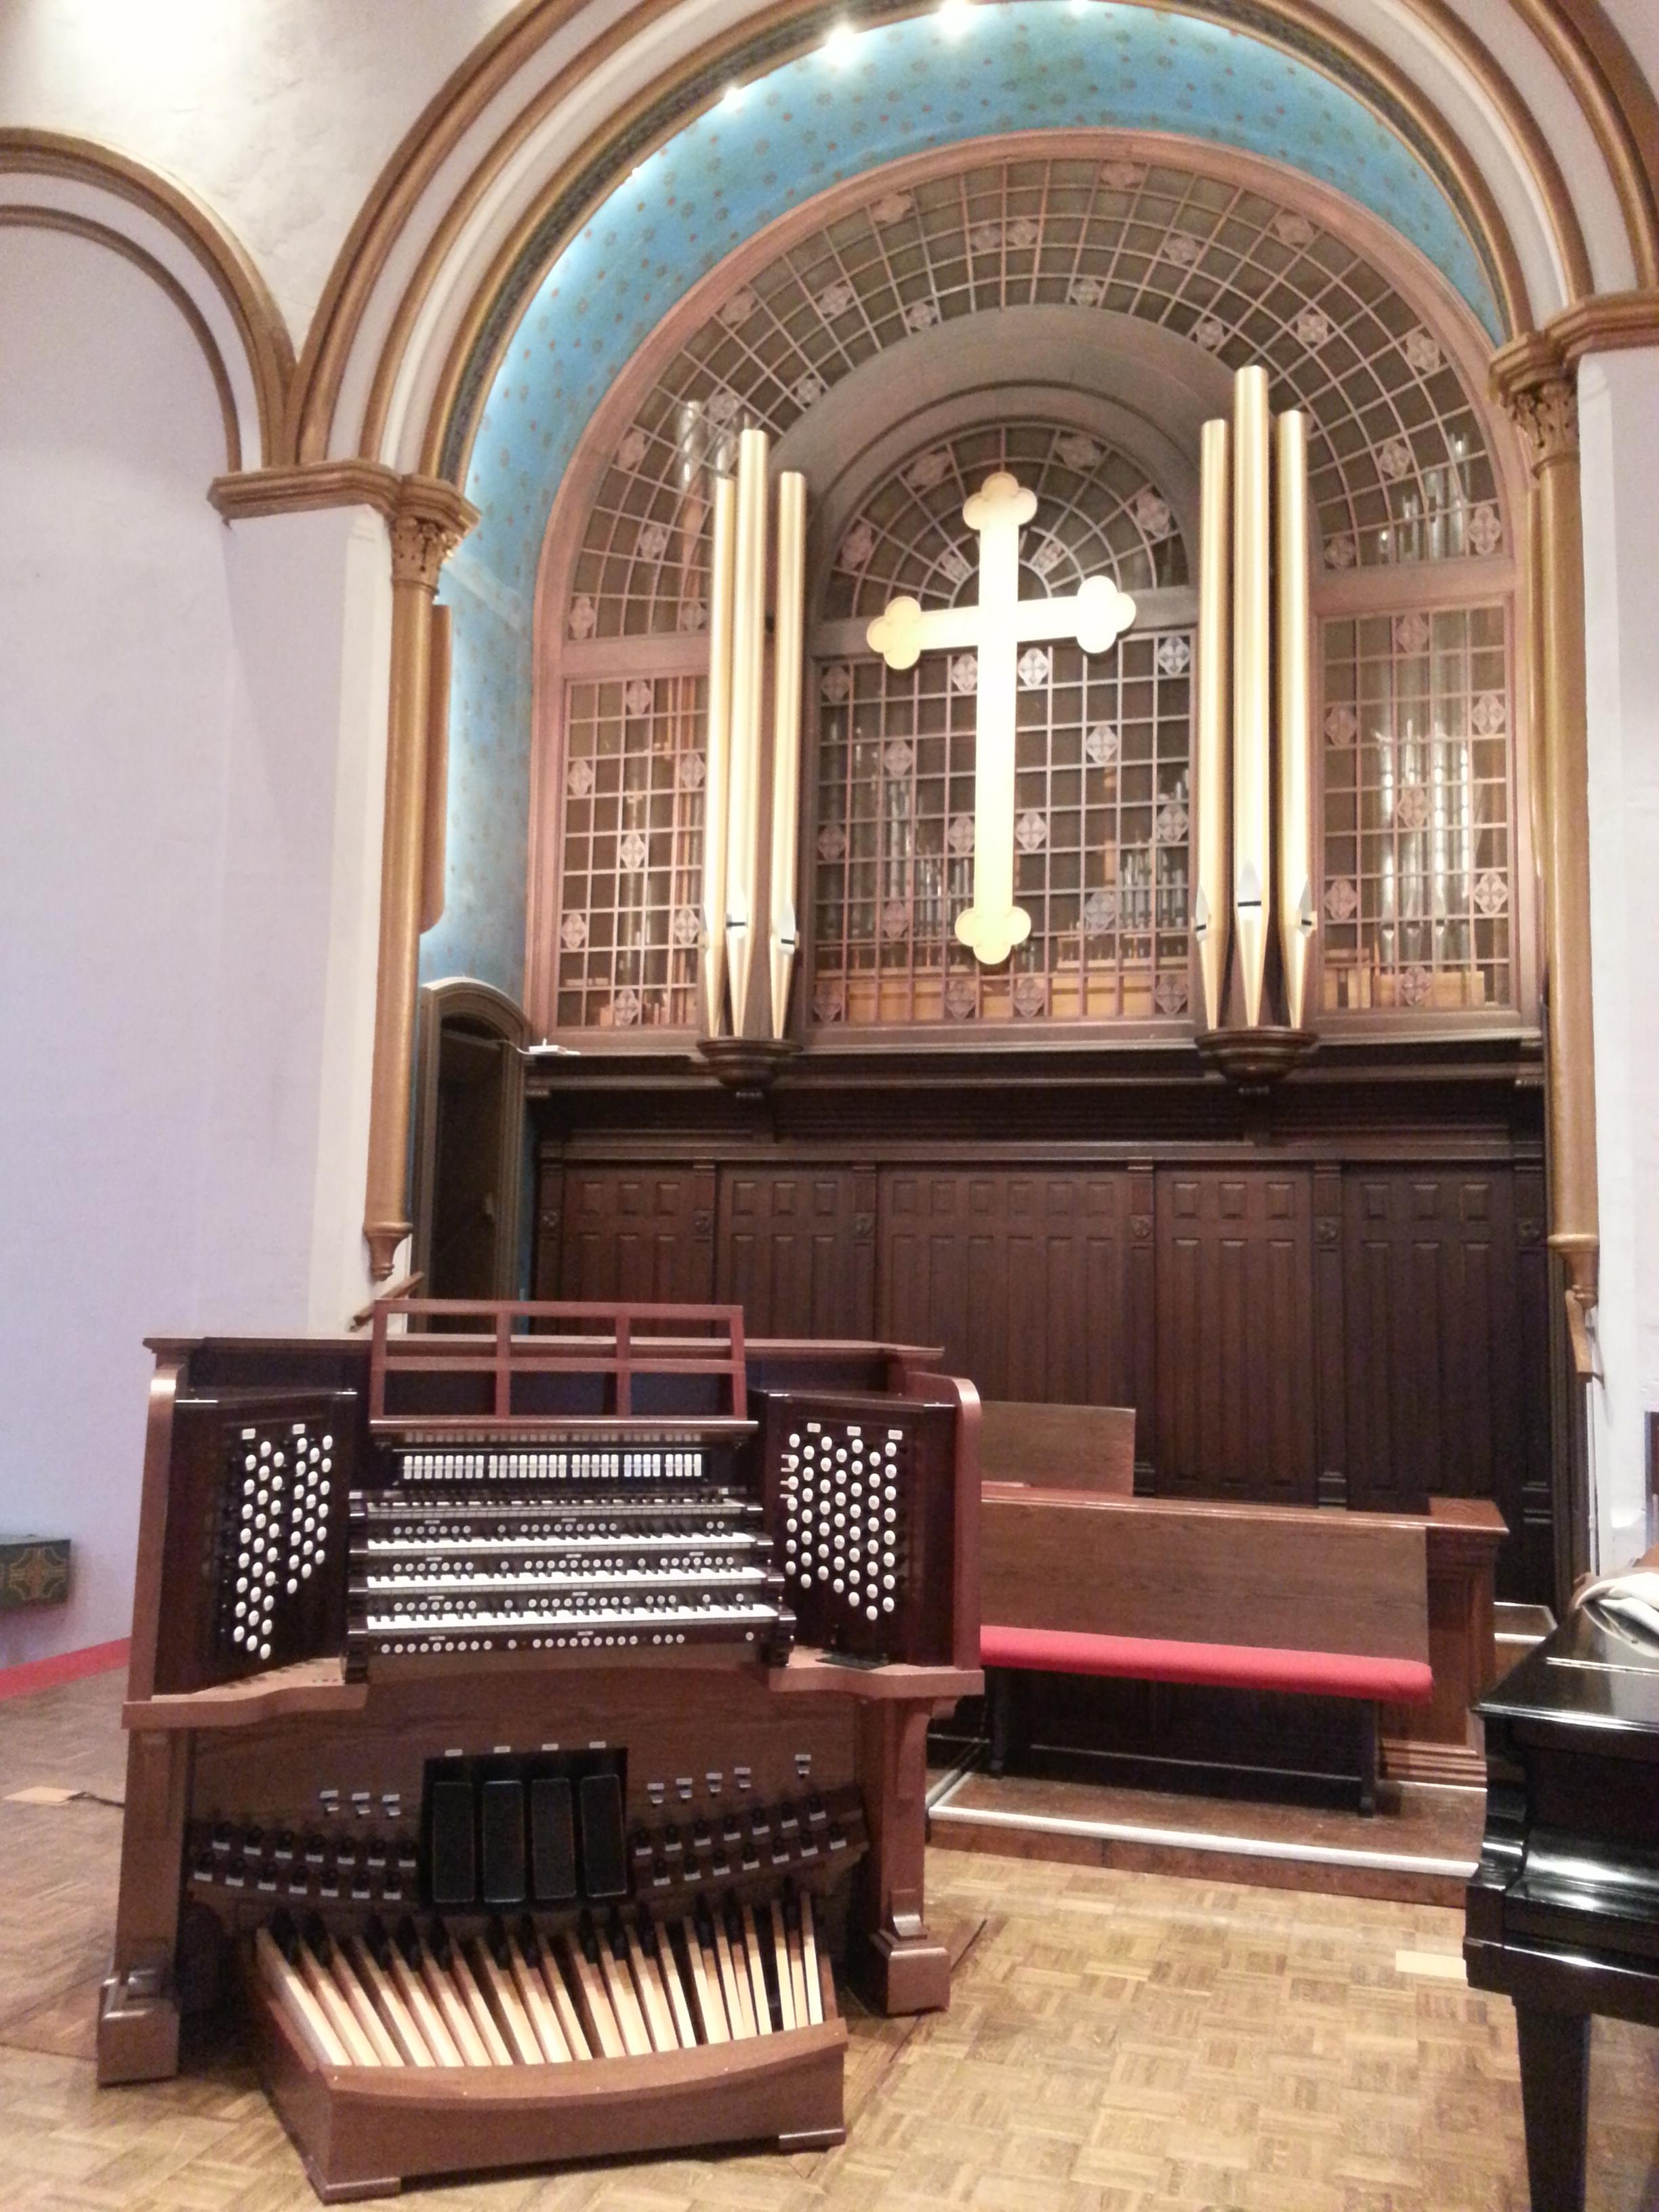 Homepage scott smith pipe organs llc scott smith pipe organs llc offers complete pipe organ services including tunings repairs releathering additions console and relay upgrades ccuart Image collections